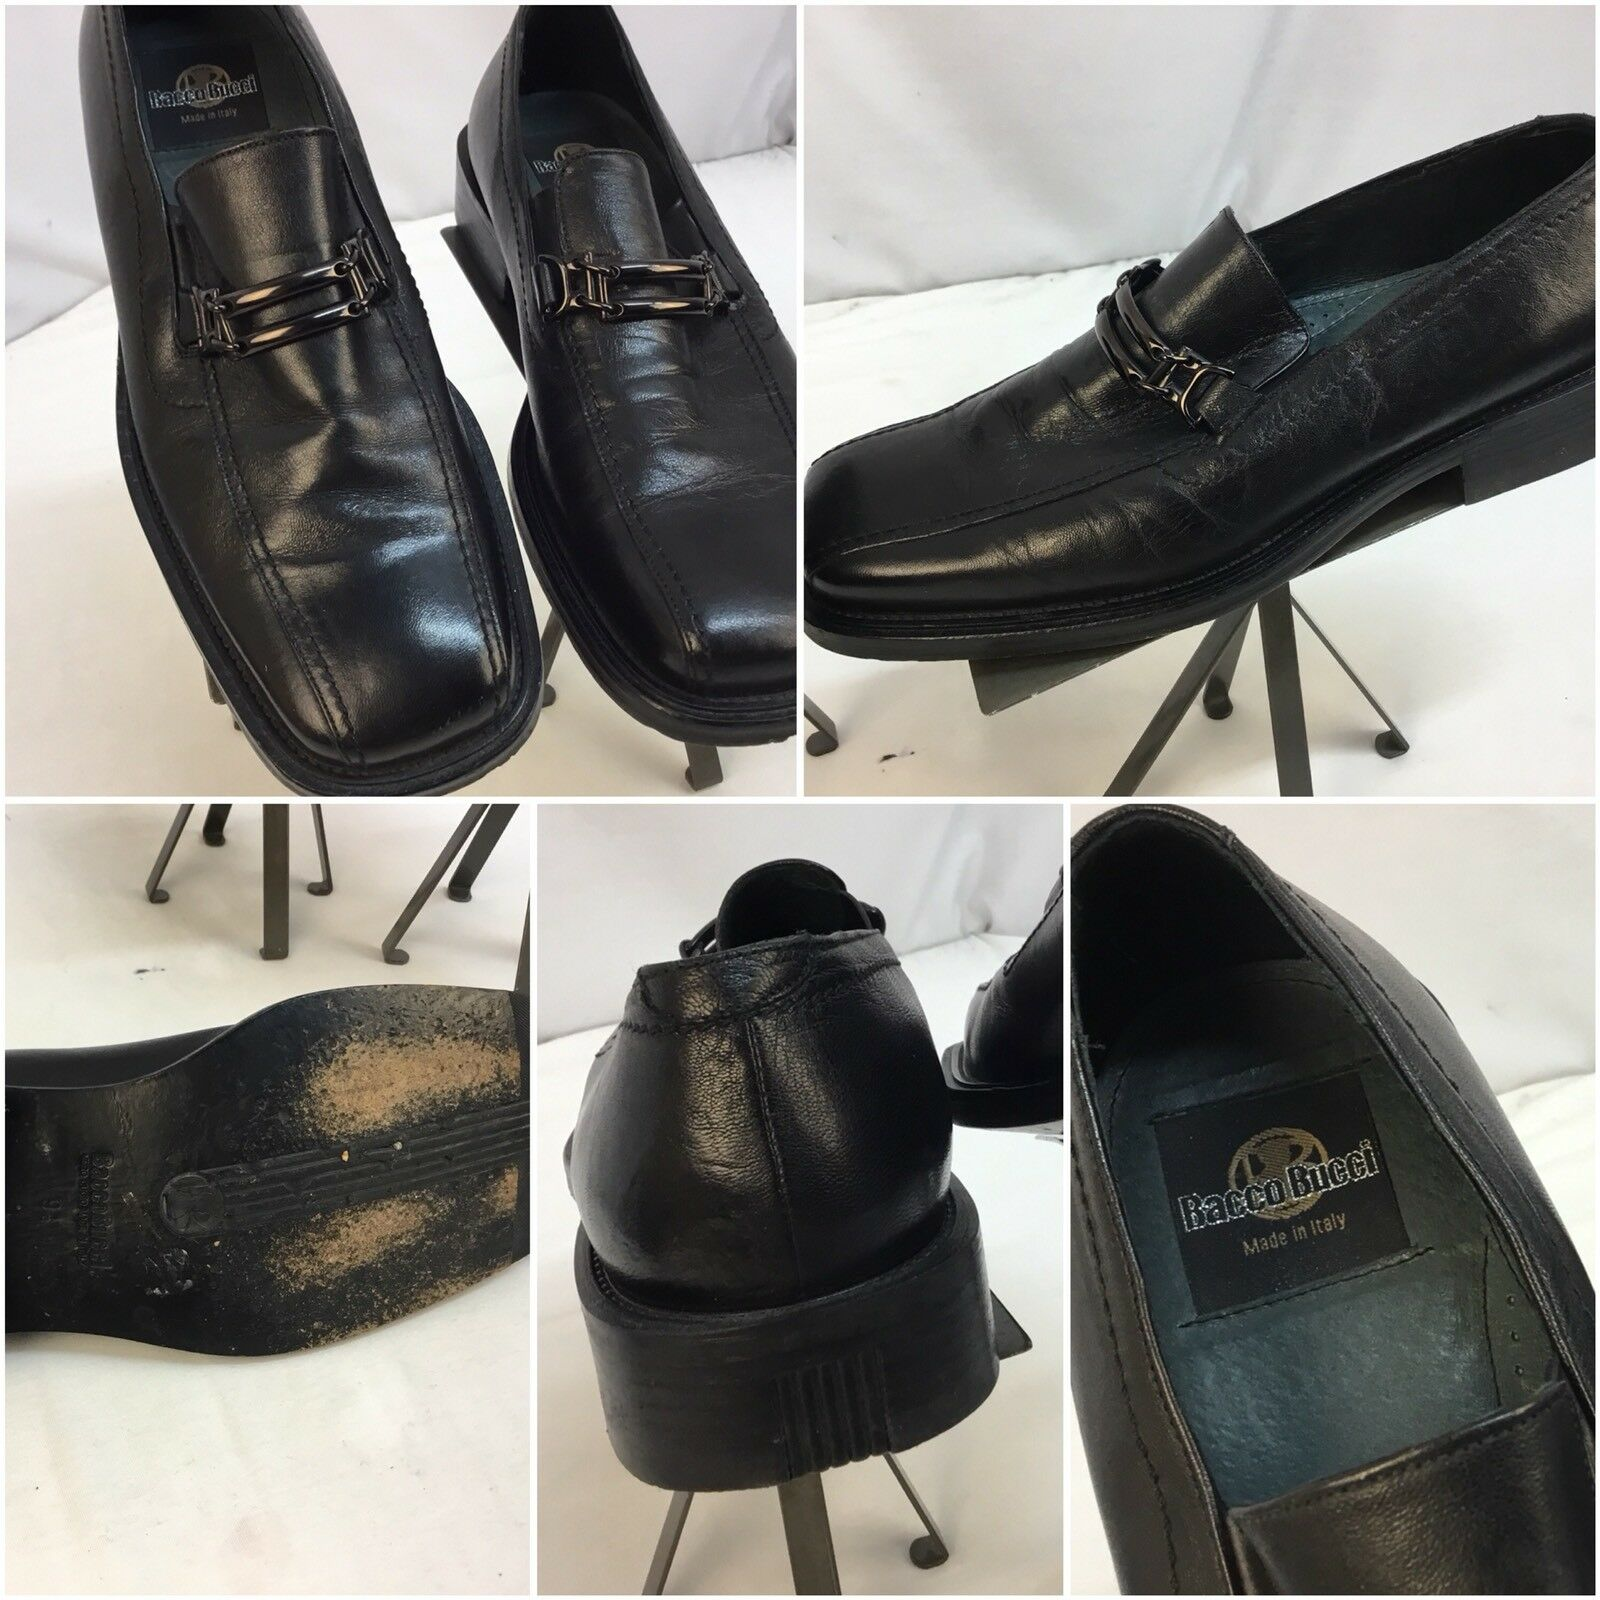 Bacco Bucci Loafers Slip On Shoes Sz 9.5 Men Black Made Italy YGI L7